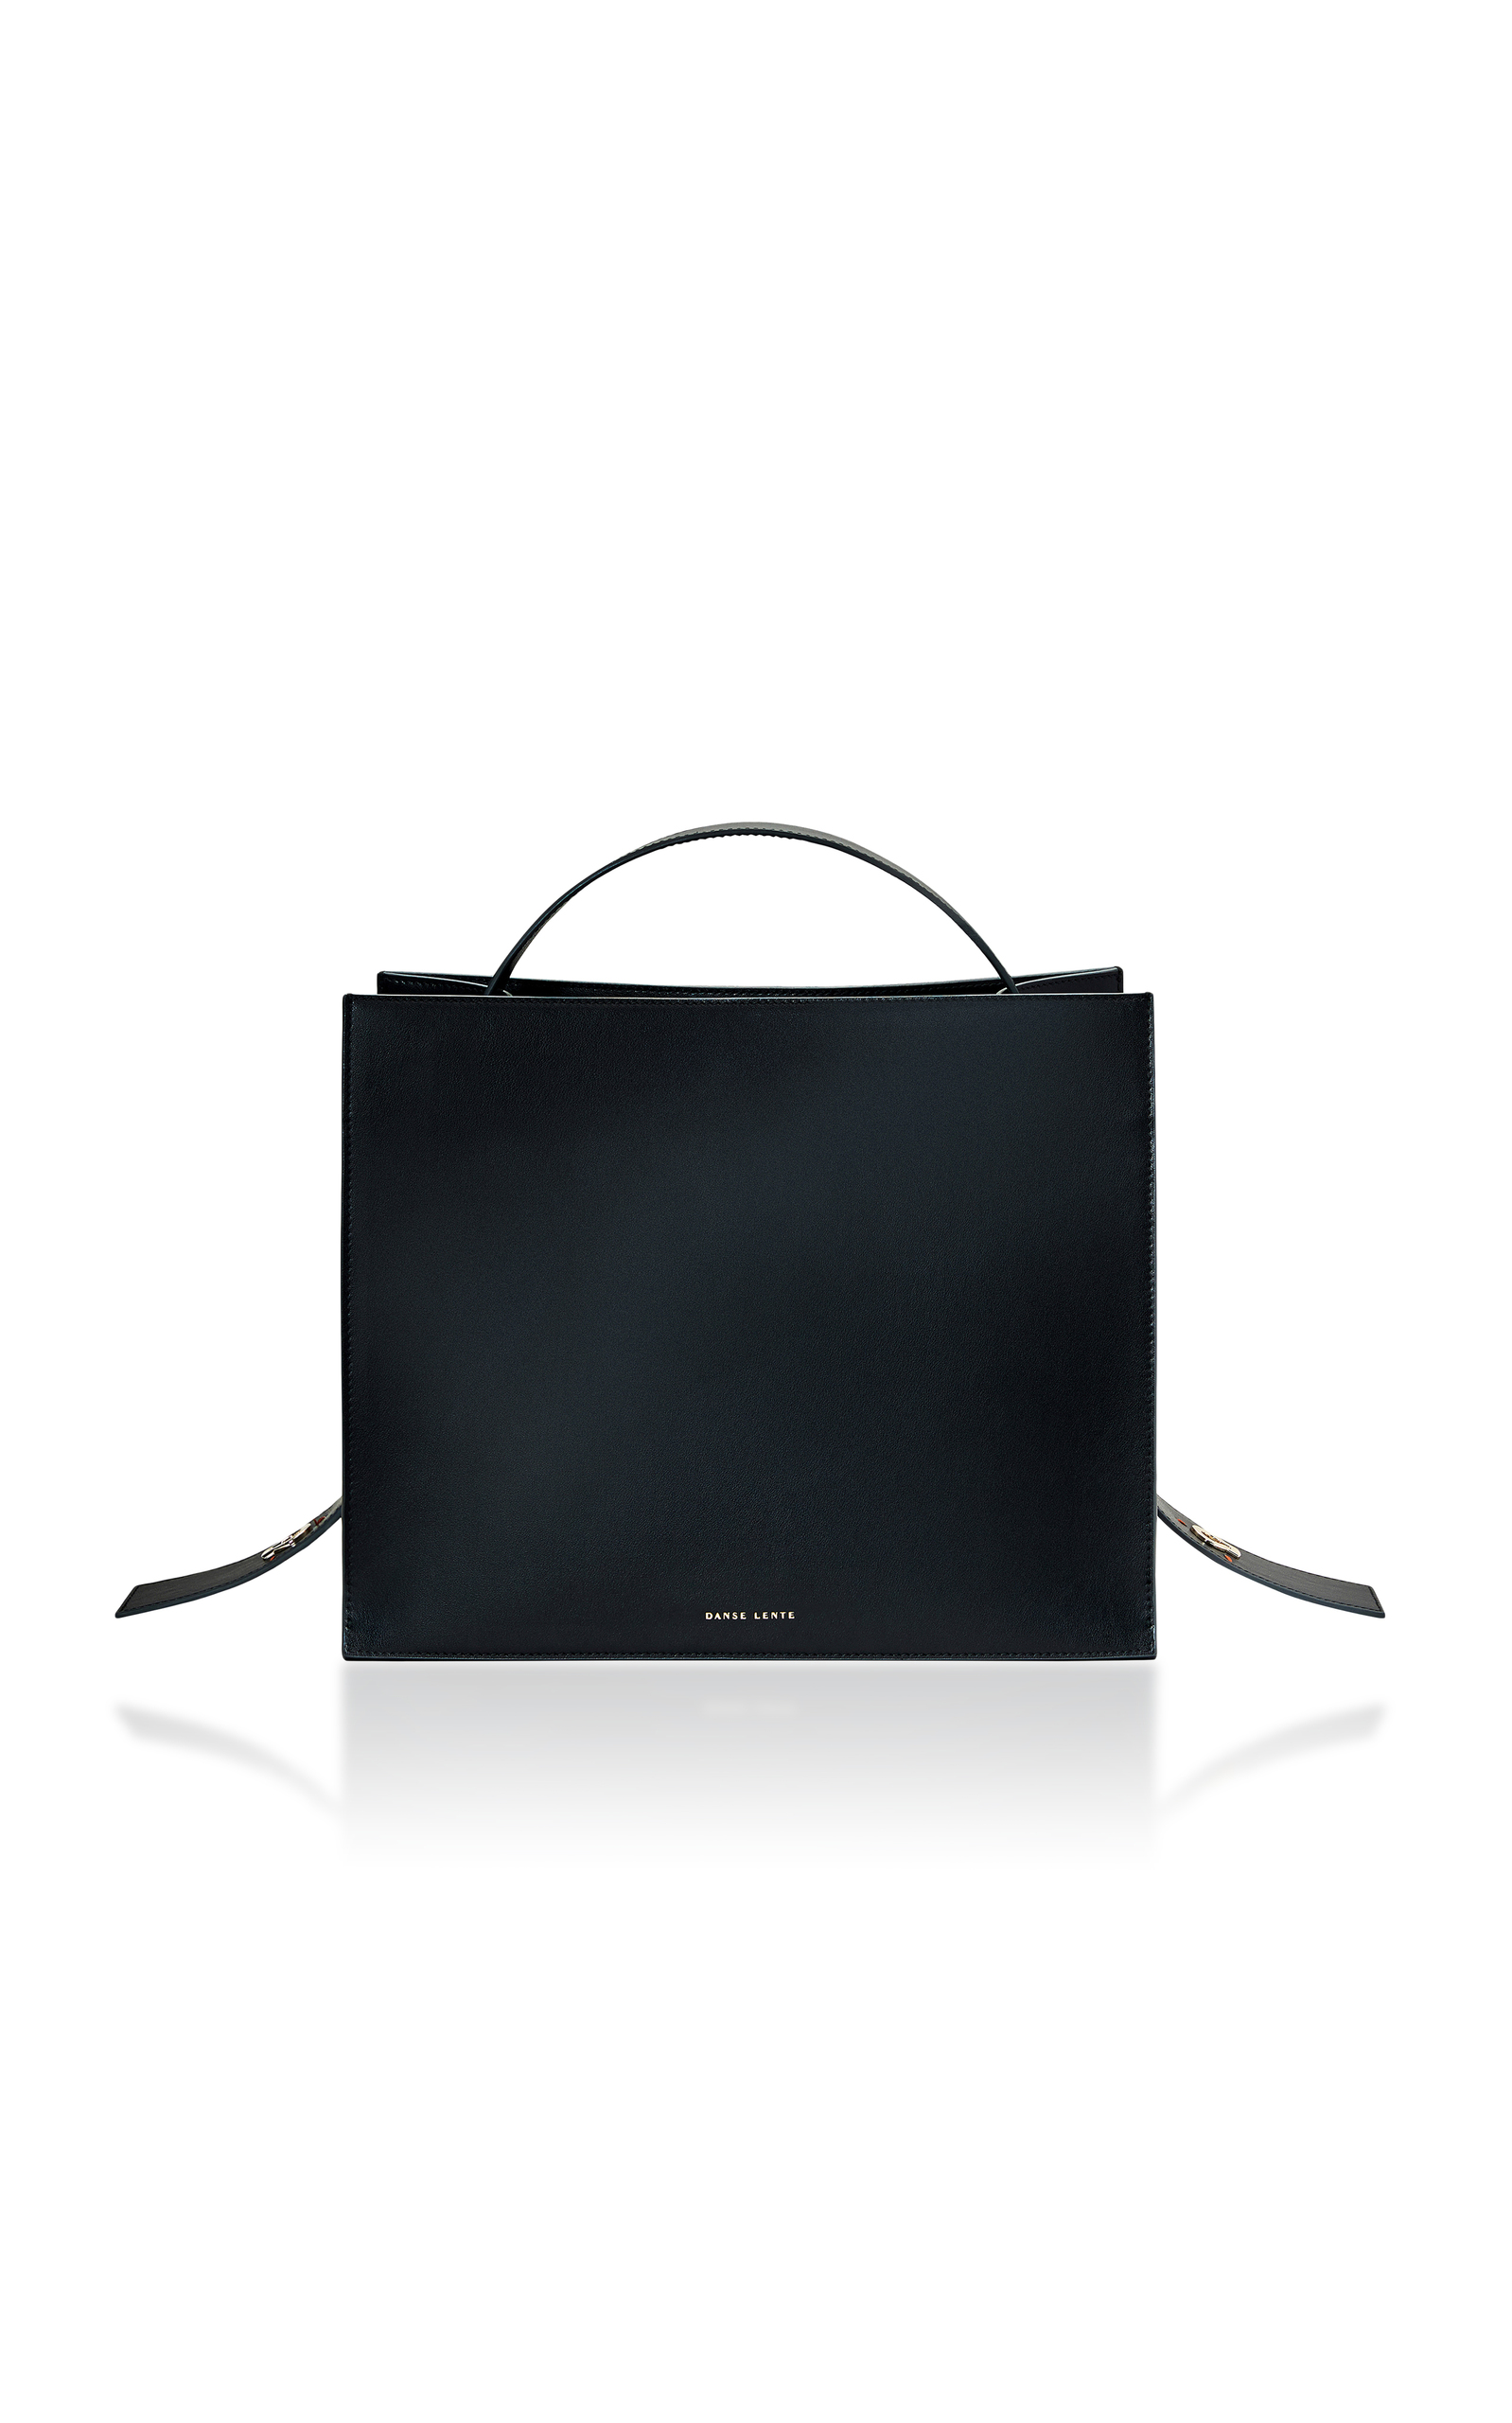 DANSE LENTE Young Leather Tote Bag - Black